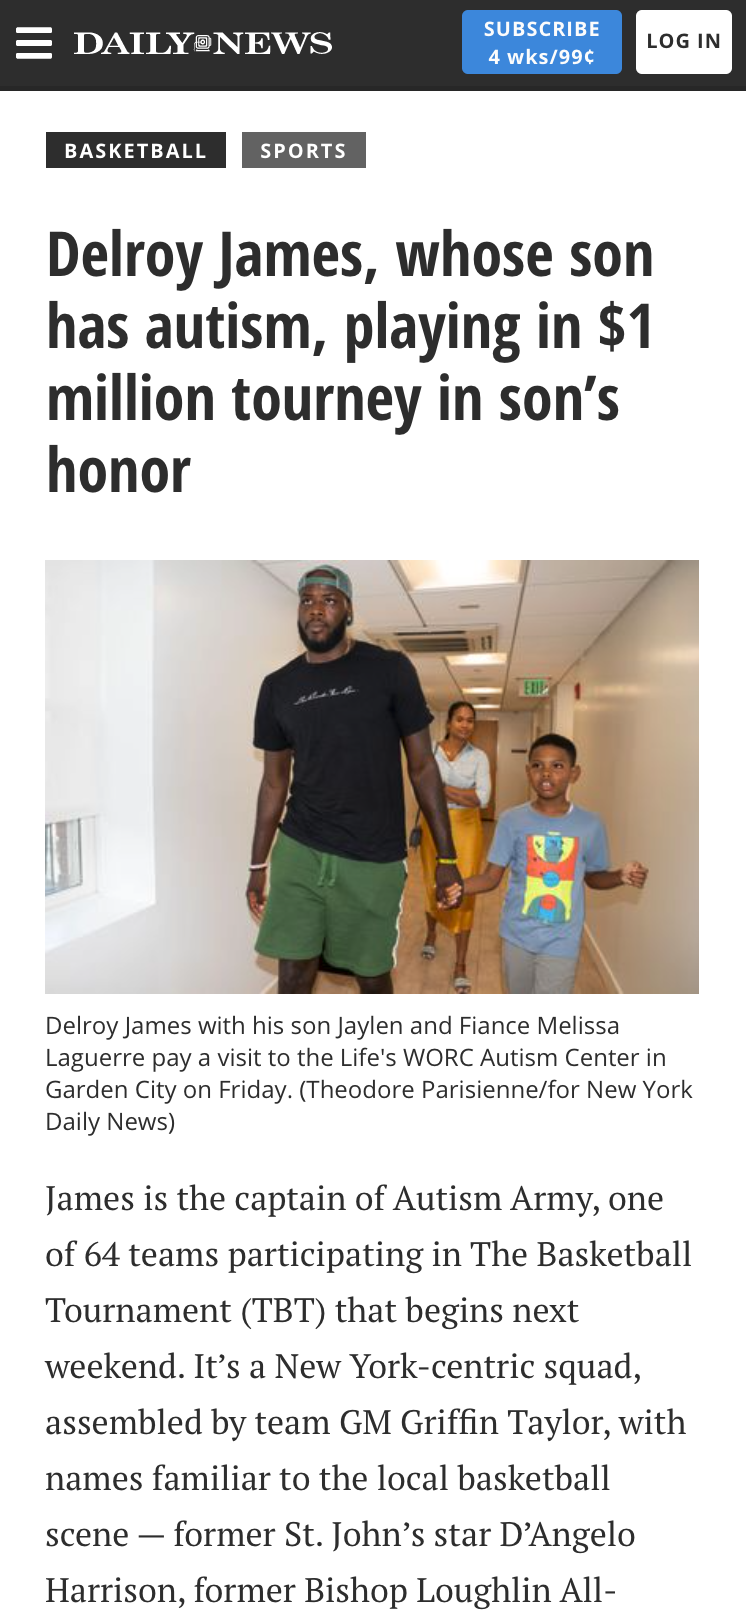 Screenshot of the Daily News article on Delroy James and Team Autism Army